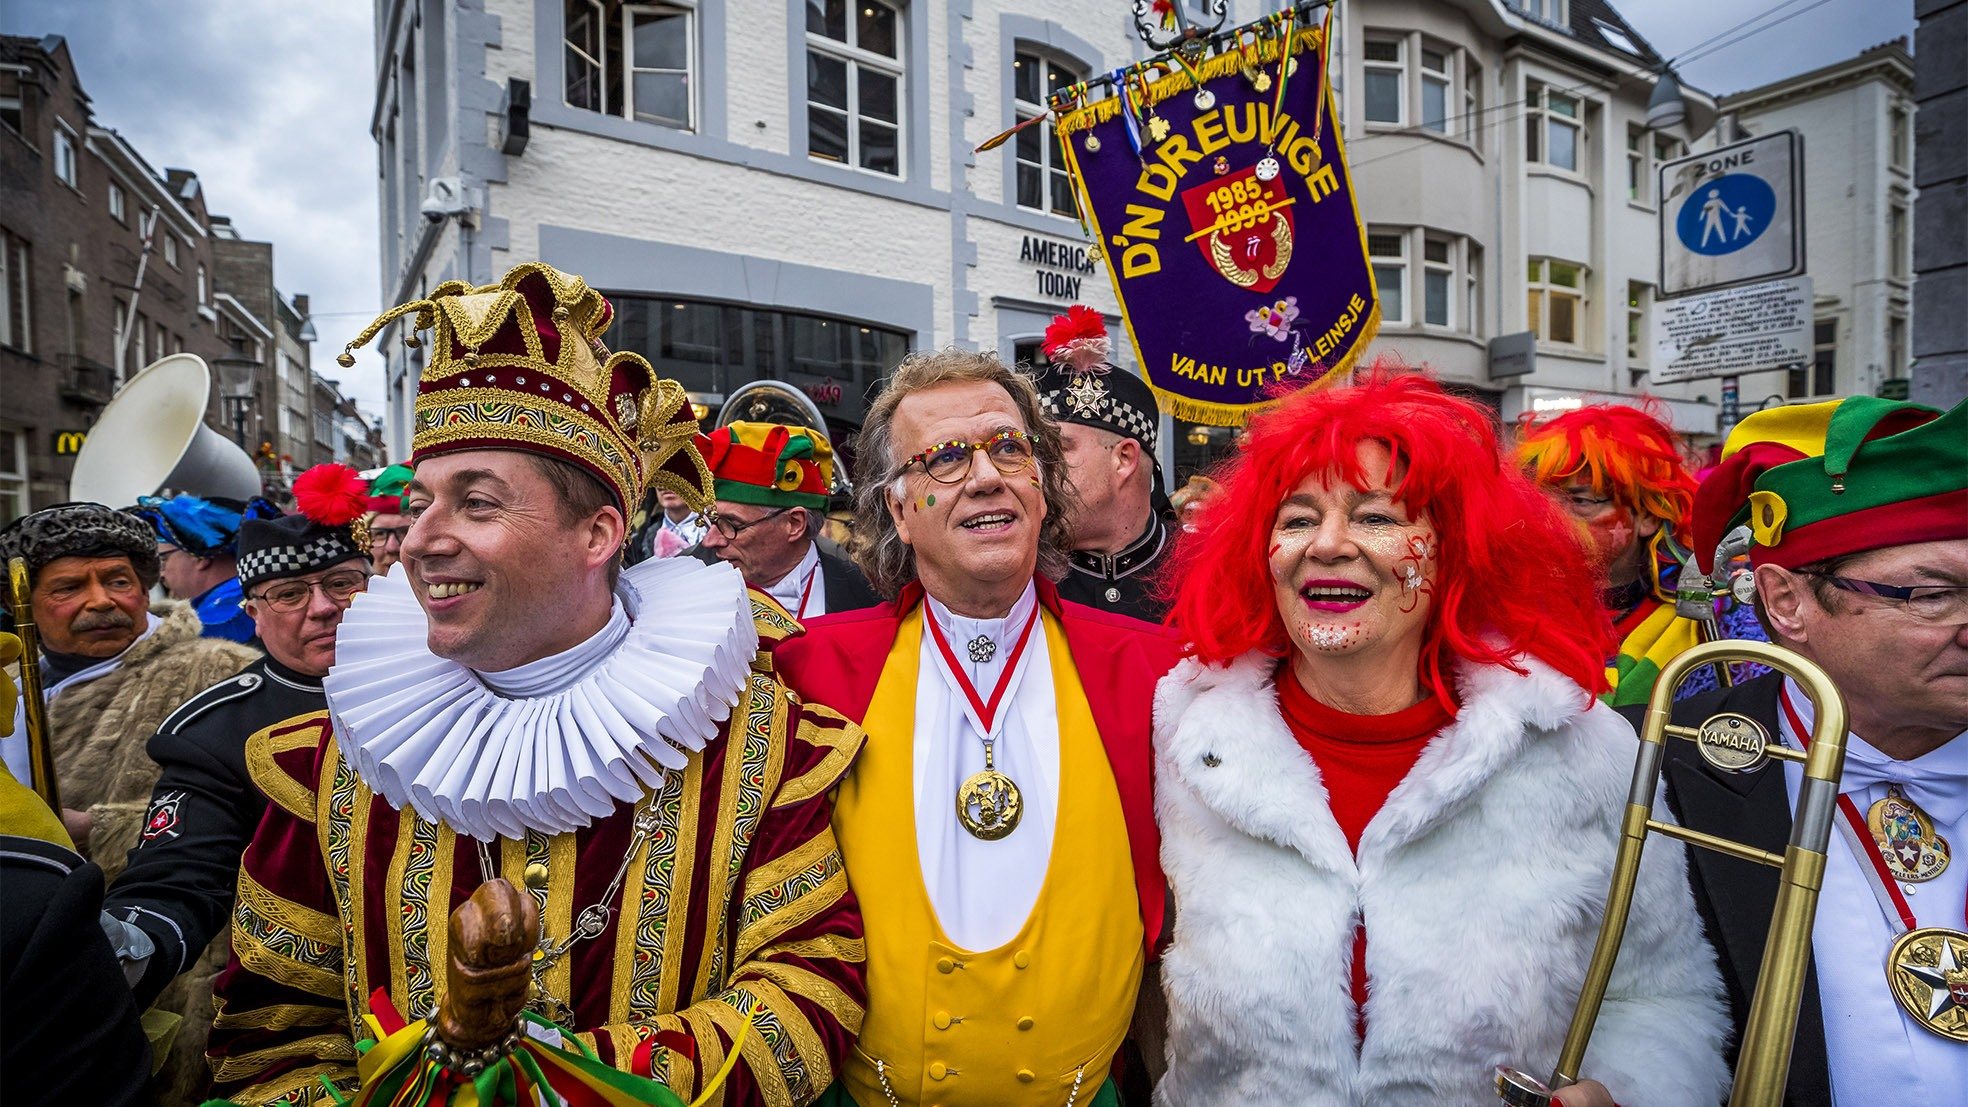 Andre rieu carnaval ondernemer 2